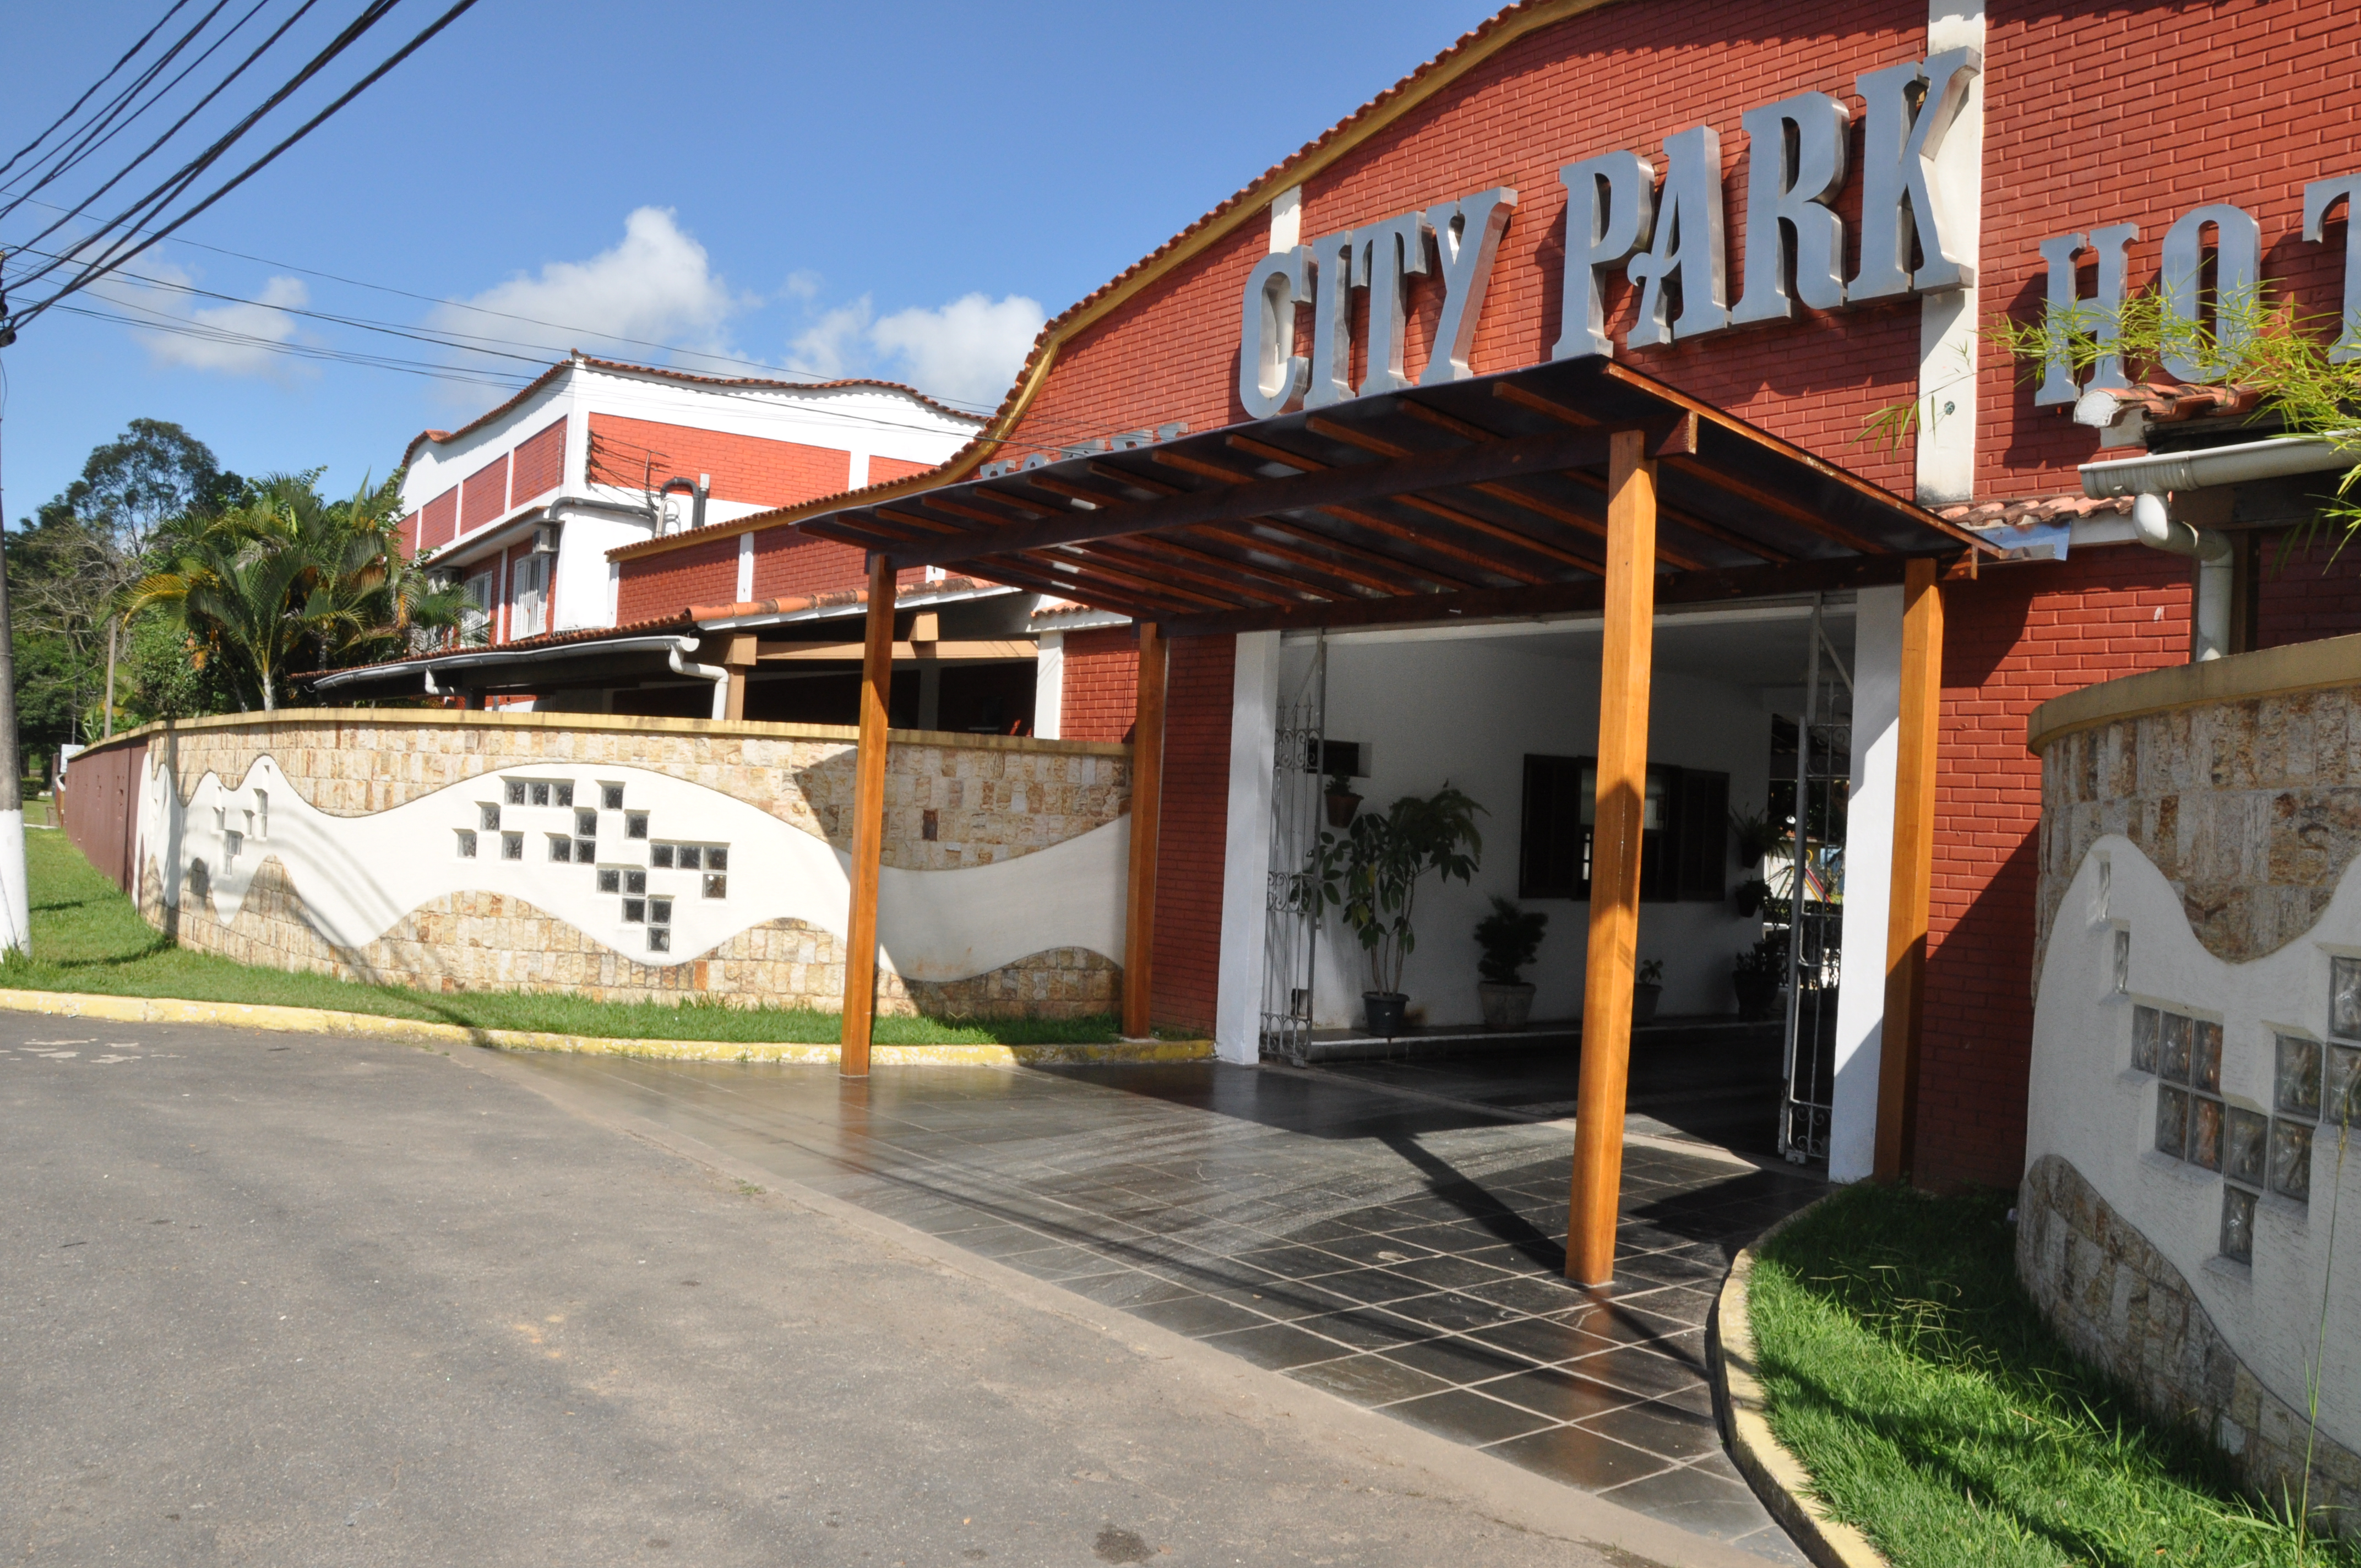 City park hotel em penedo for Appart hotel park and suites